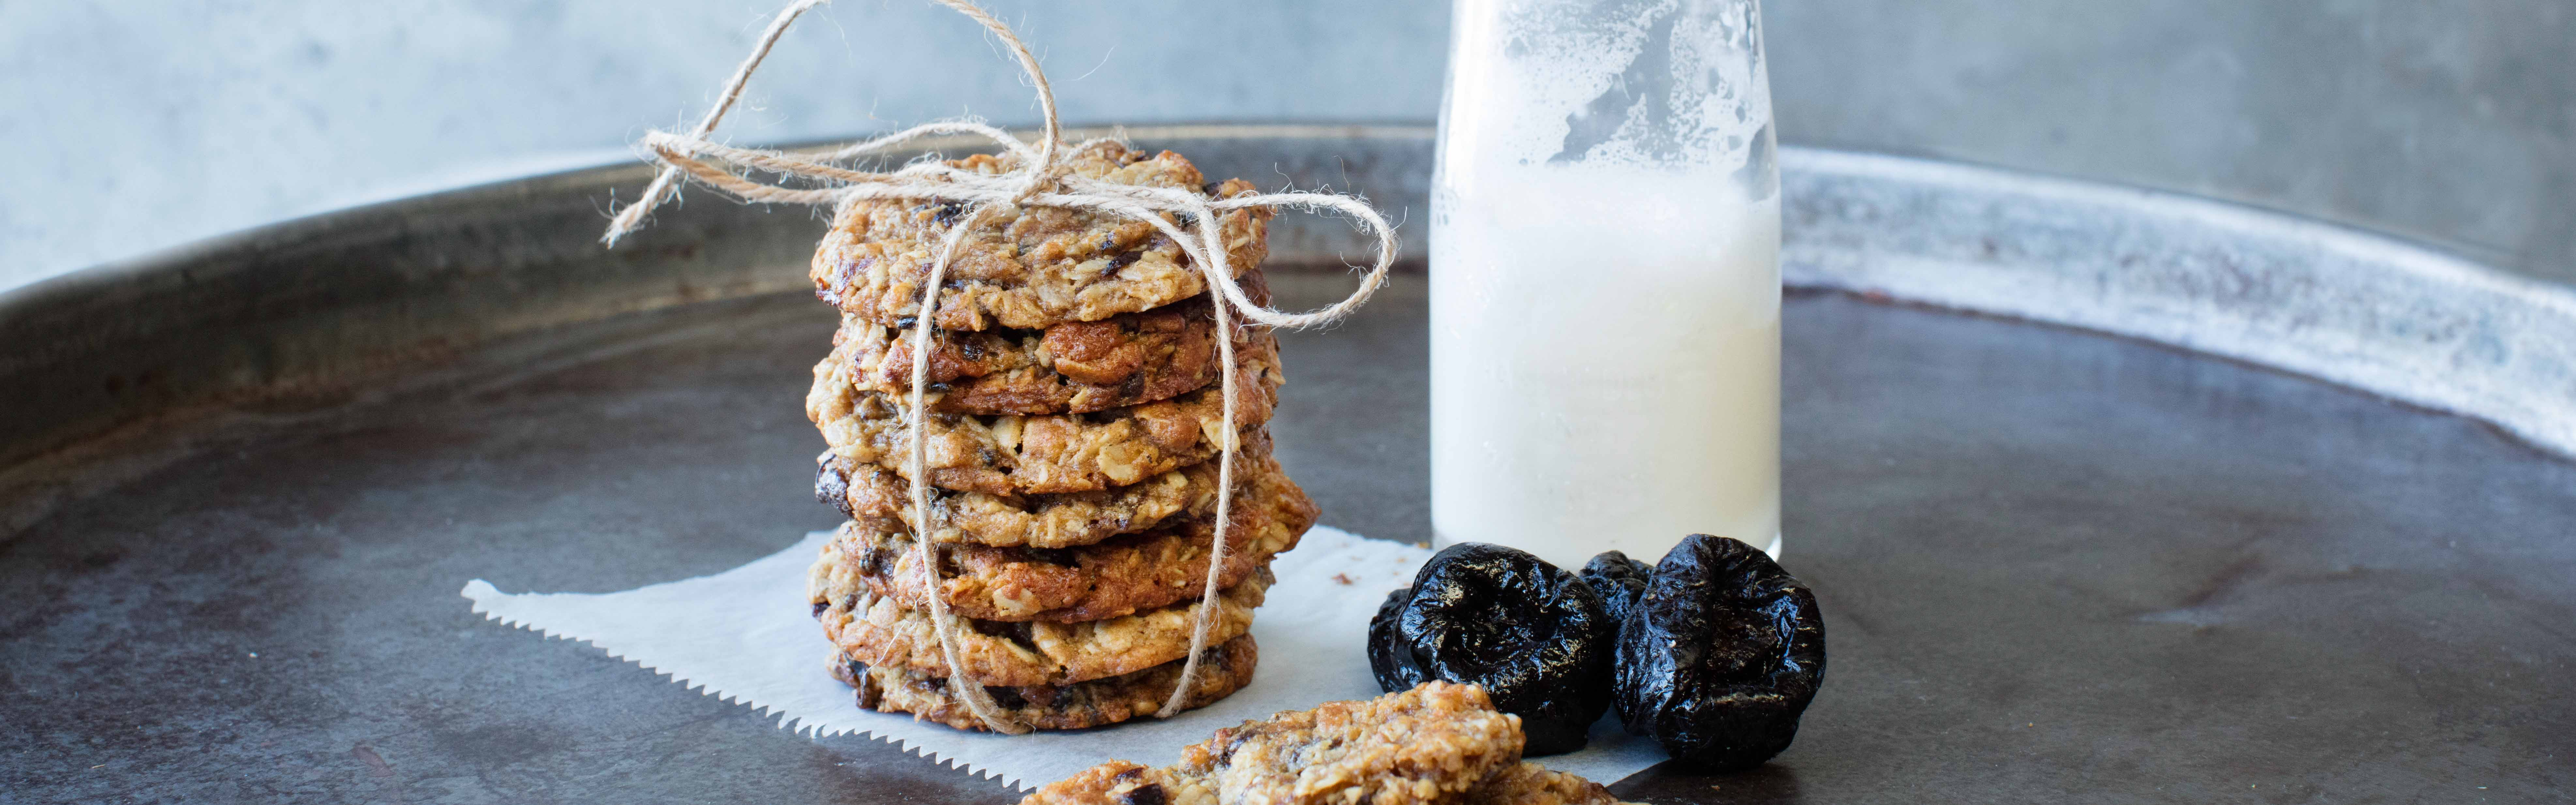 <p>These Anzac biscuits (cookies in the U.S.) have 33% less cane sugar and 20% less butter than the original recipe. The way they stay rich in flavor is because they are made with prunes.</p>